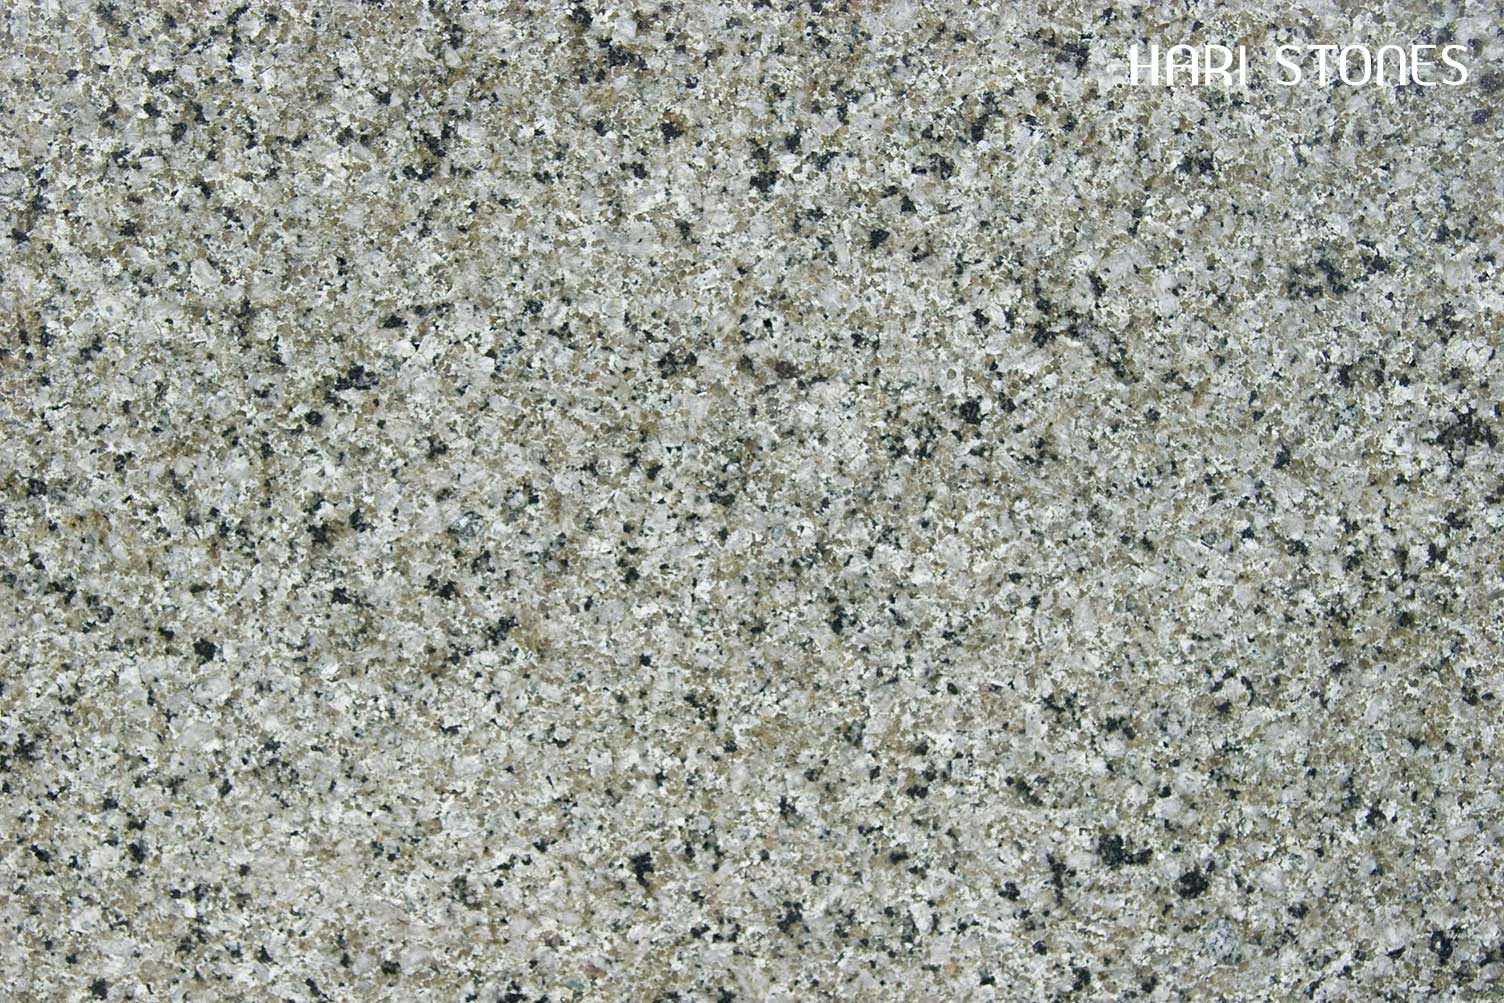 Verde Fashion Granite Slabs Suppliers